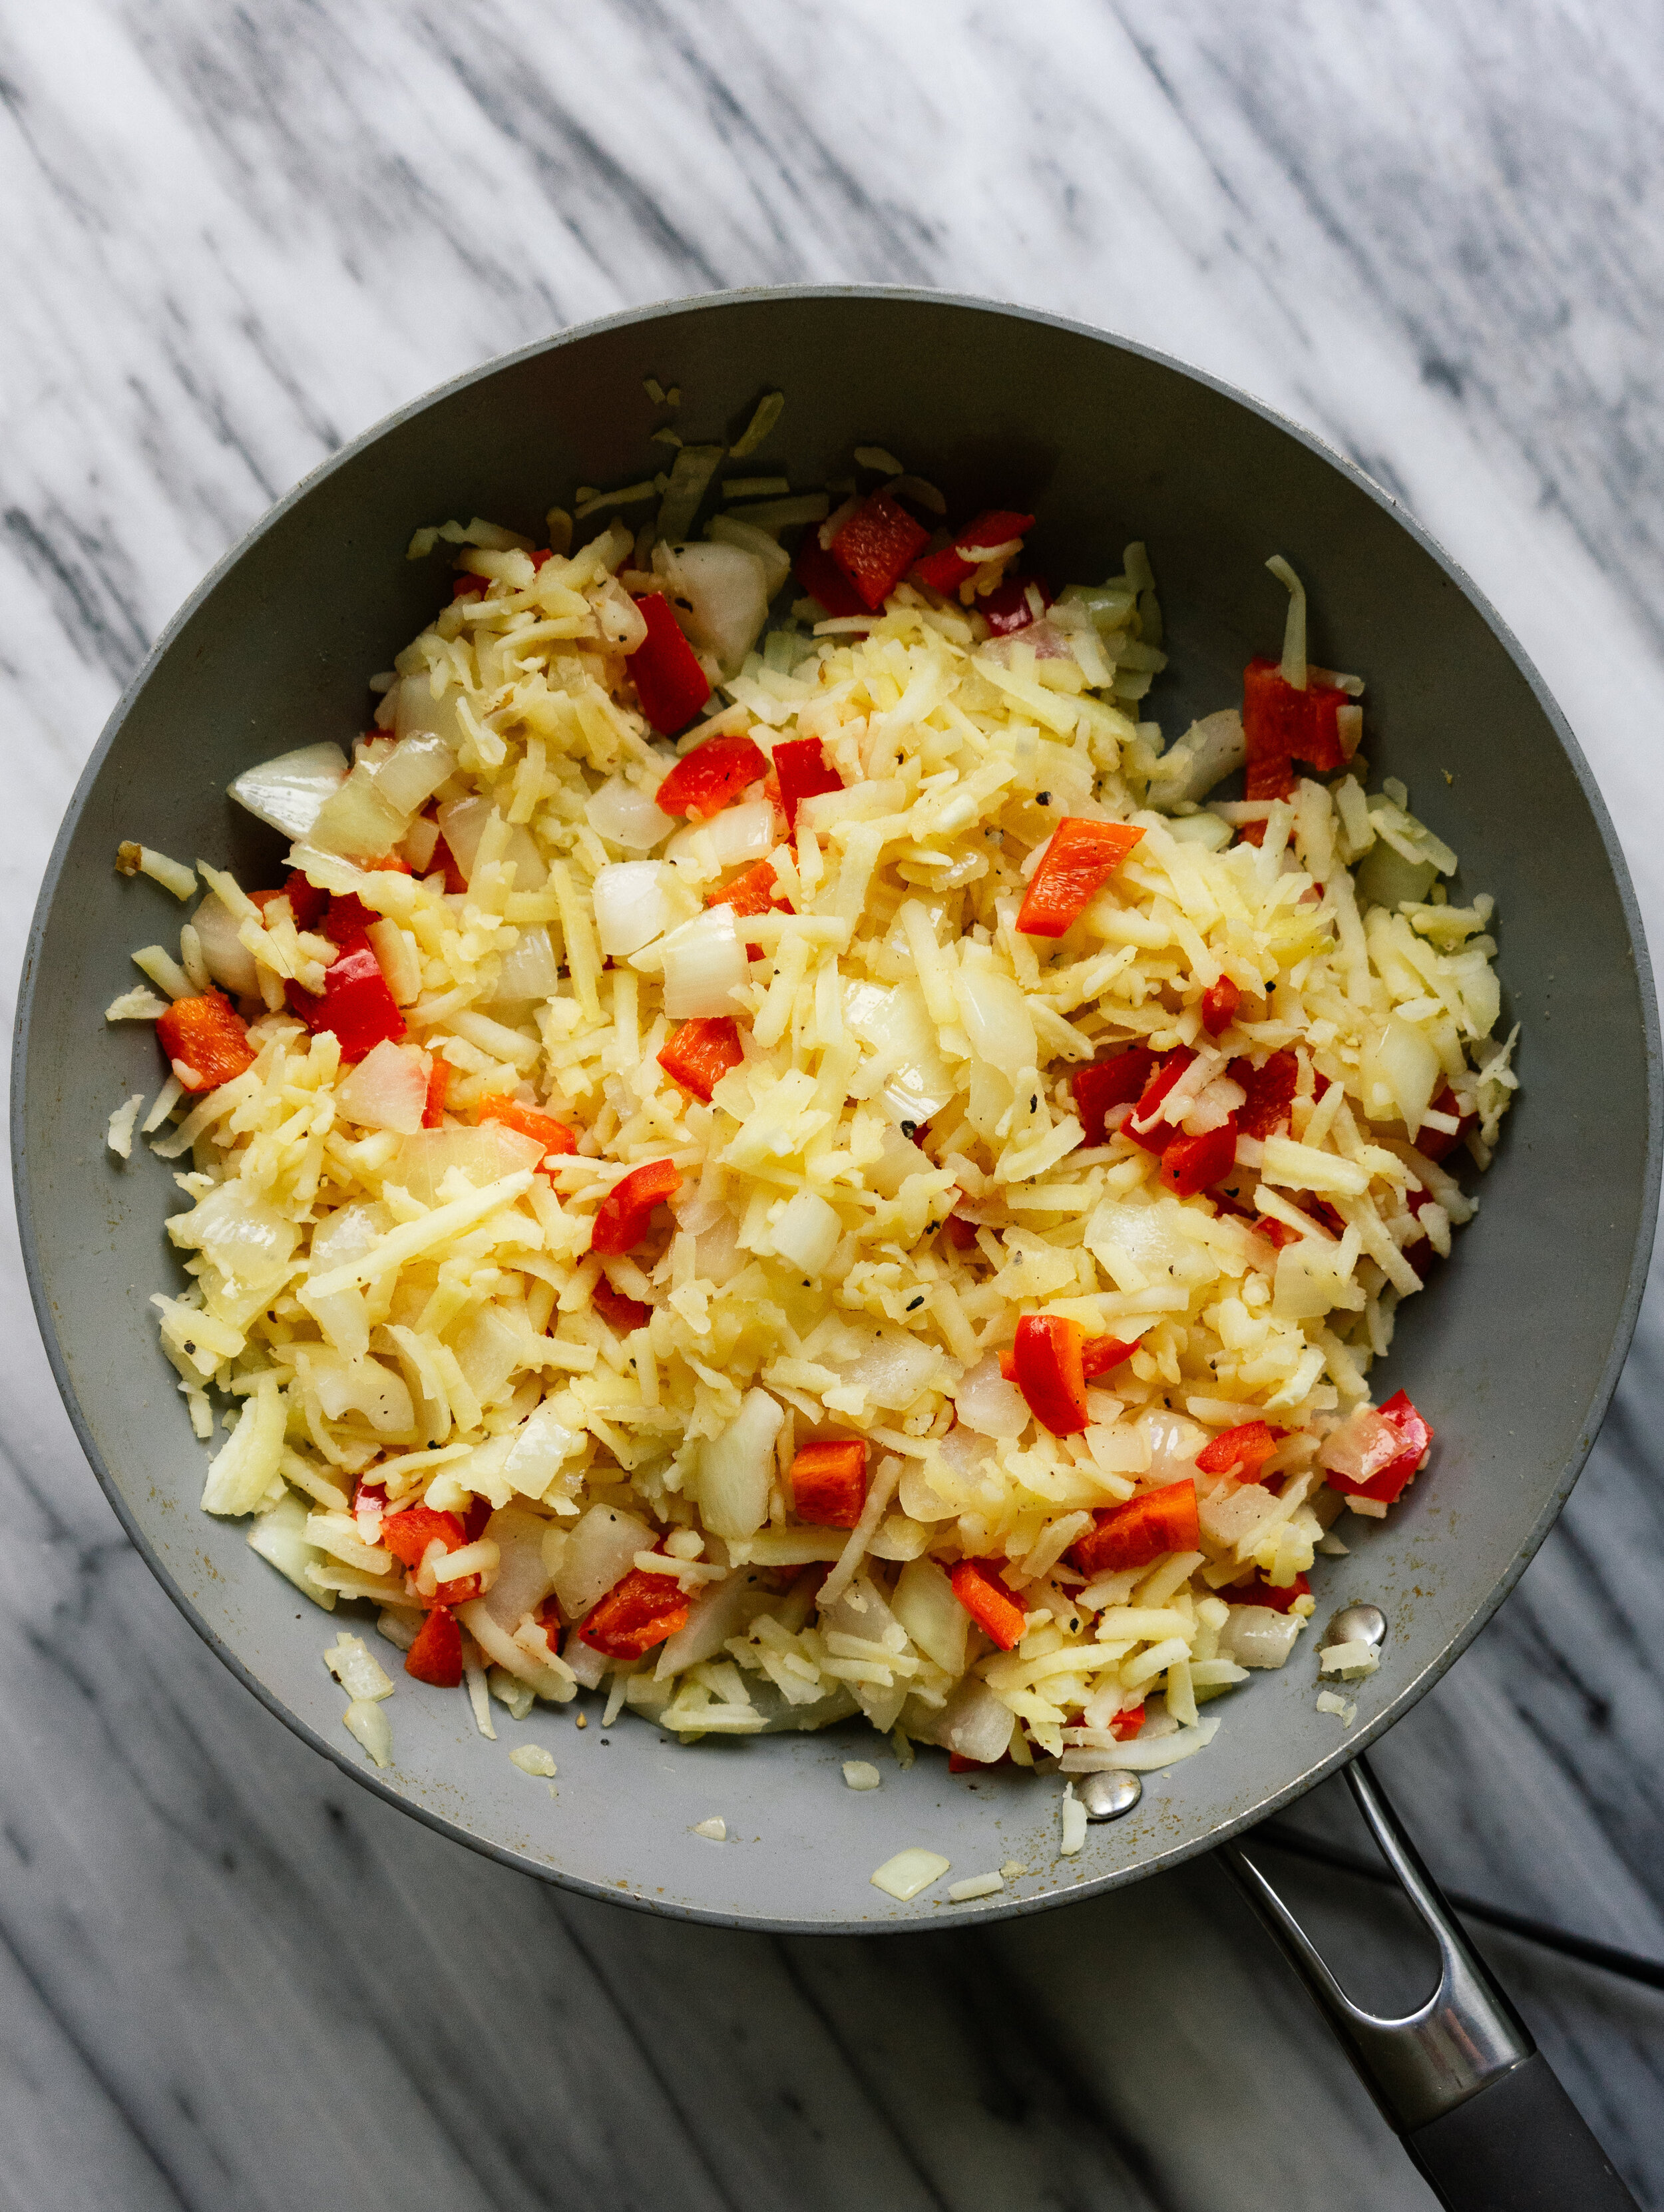 Above view of hash browns in a frying pan with onions and red bell peppers